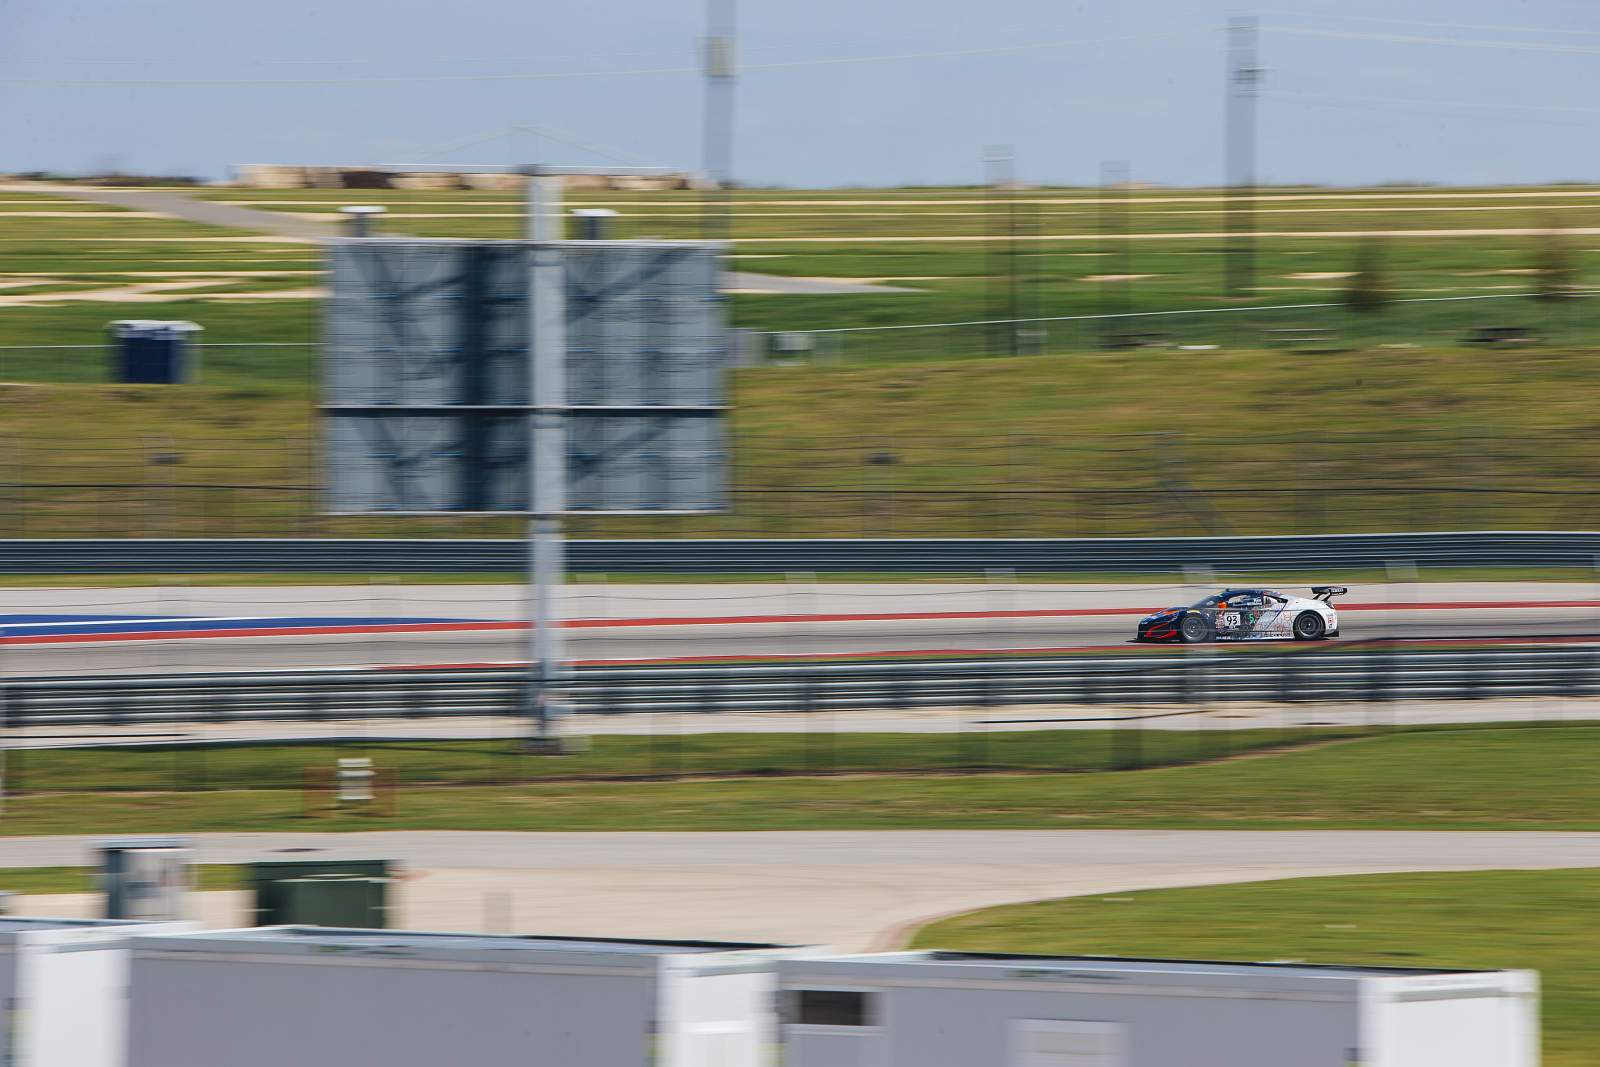 peter-kox-realtime-racing-pirelli-world-challenge-cota--017